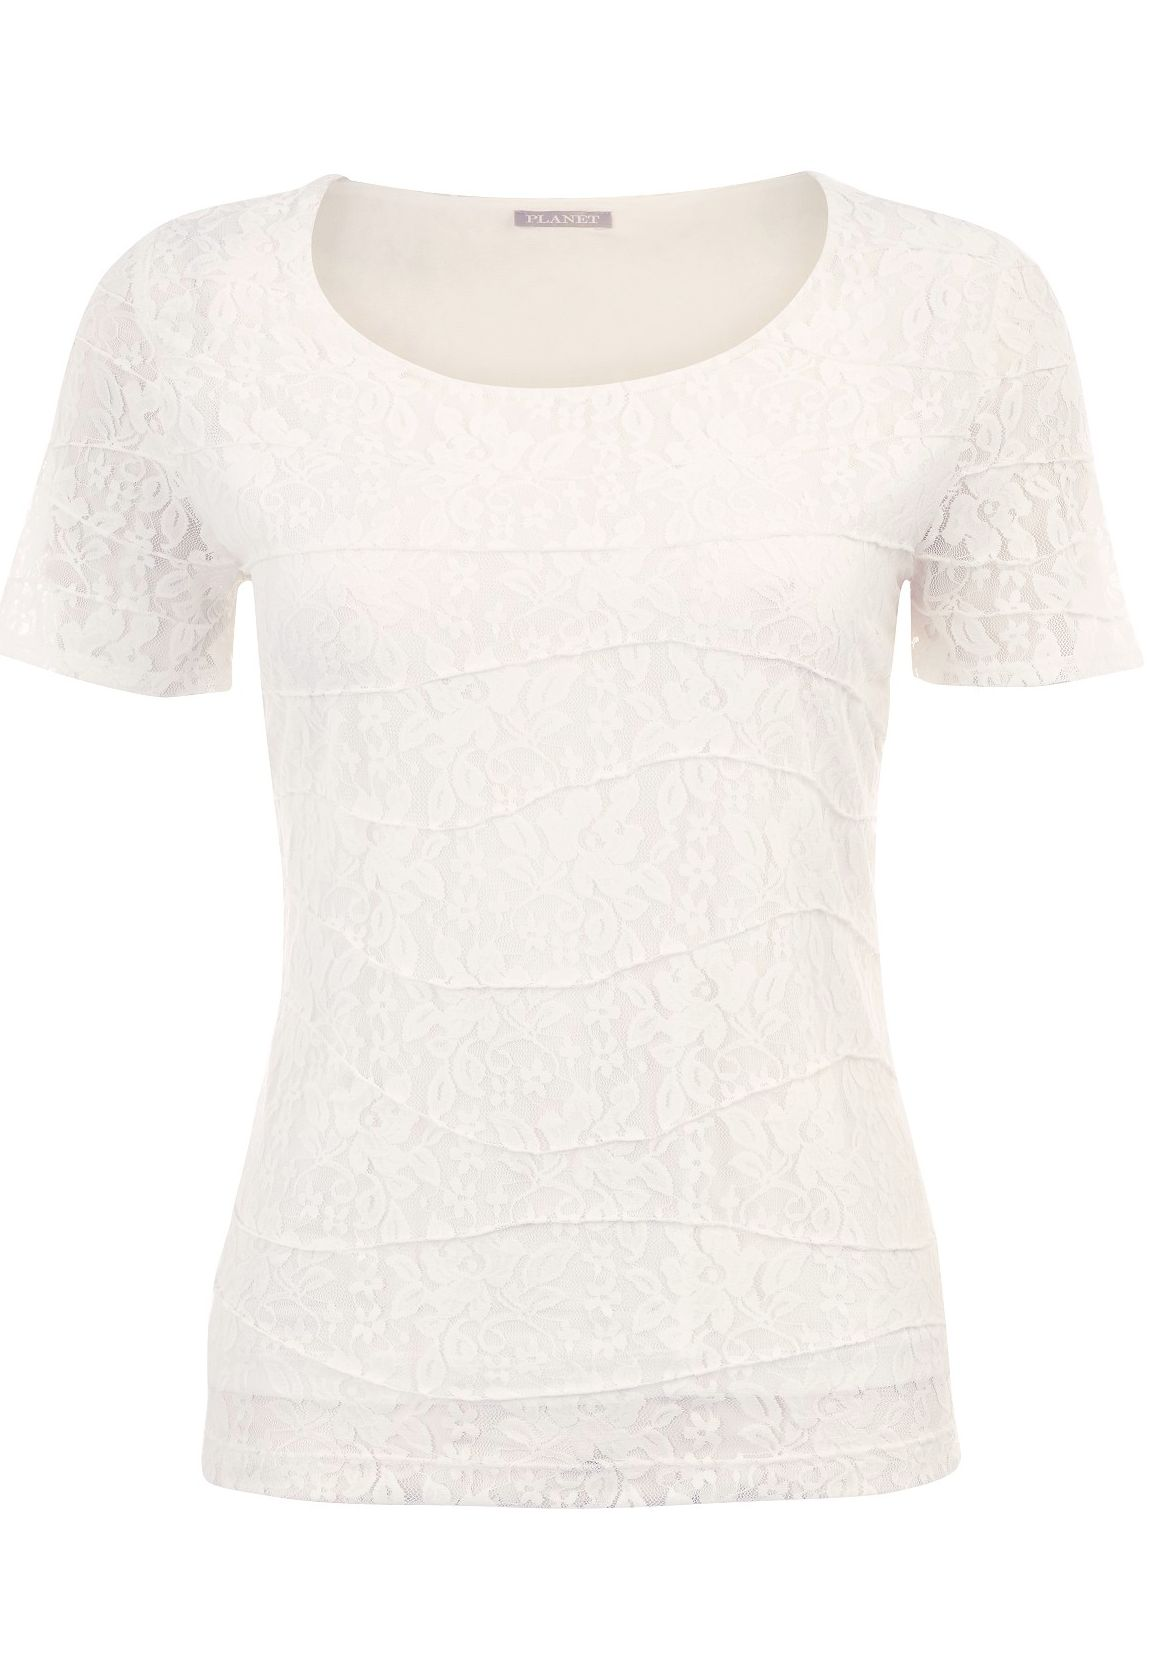 Warm ivory textured short sleeve top